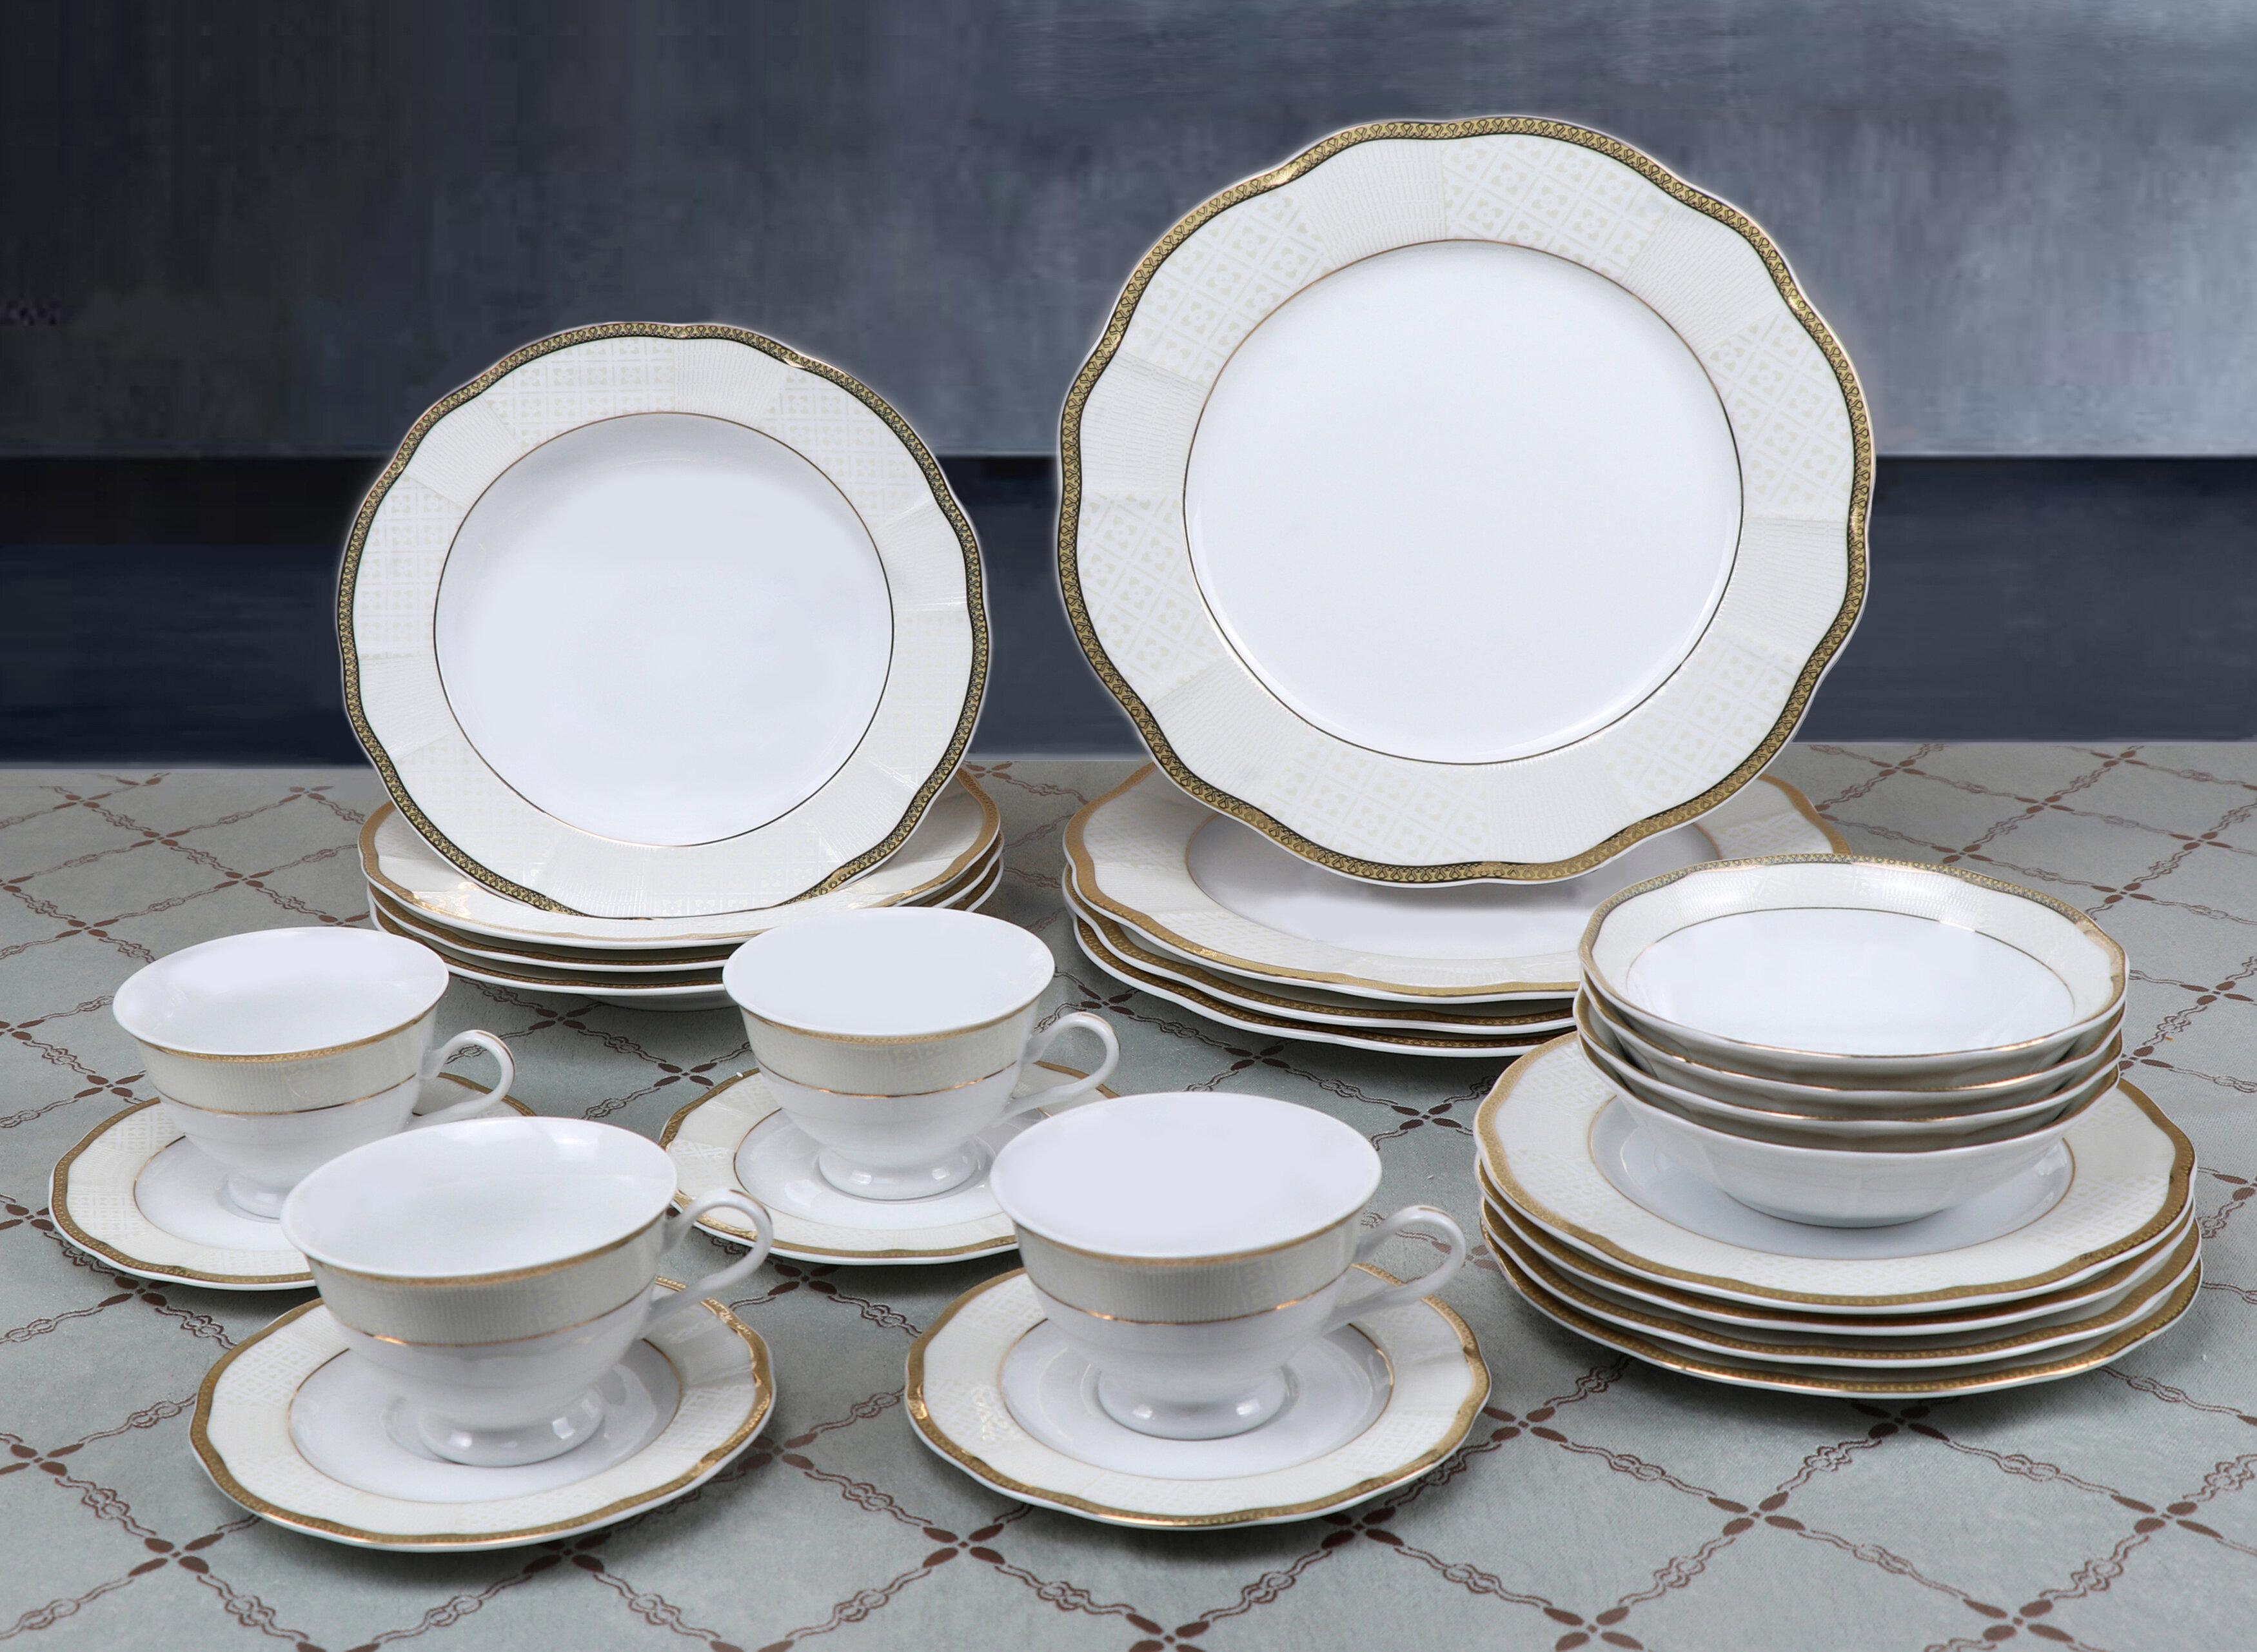 Flato 20 pc Forest Bone China Gold Border Style Dinner Set Service for 4